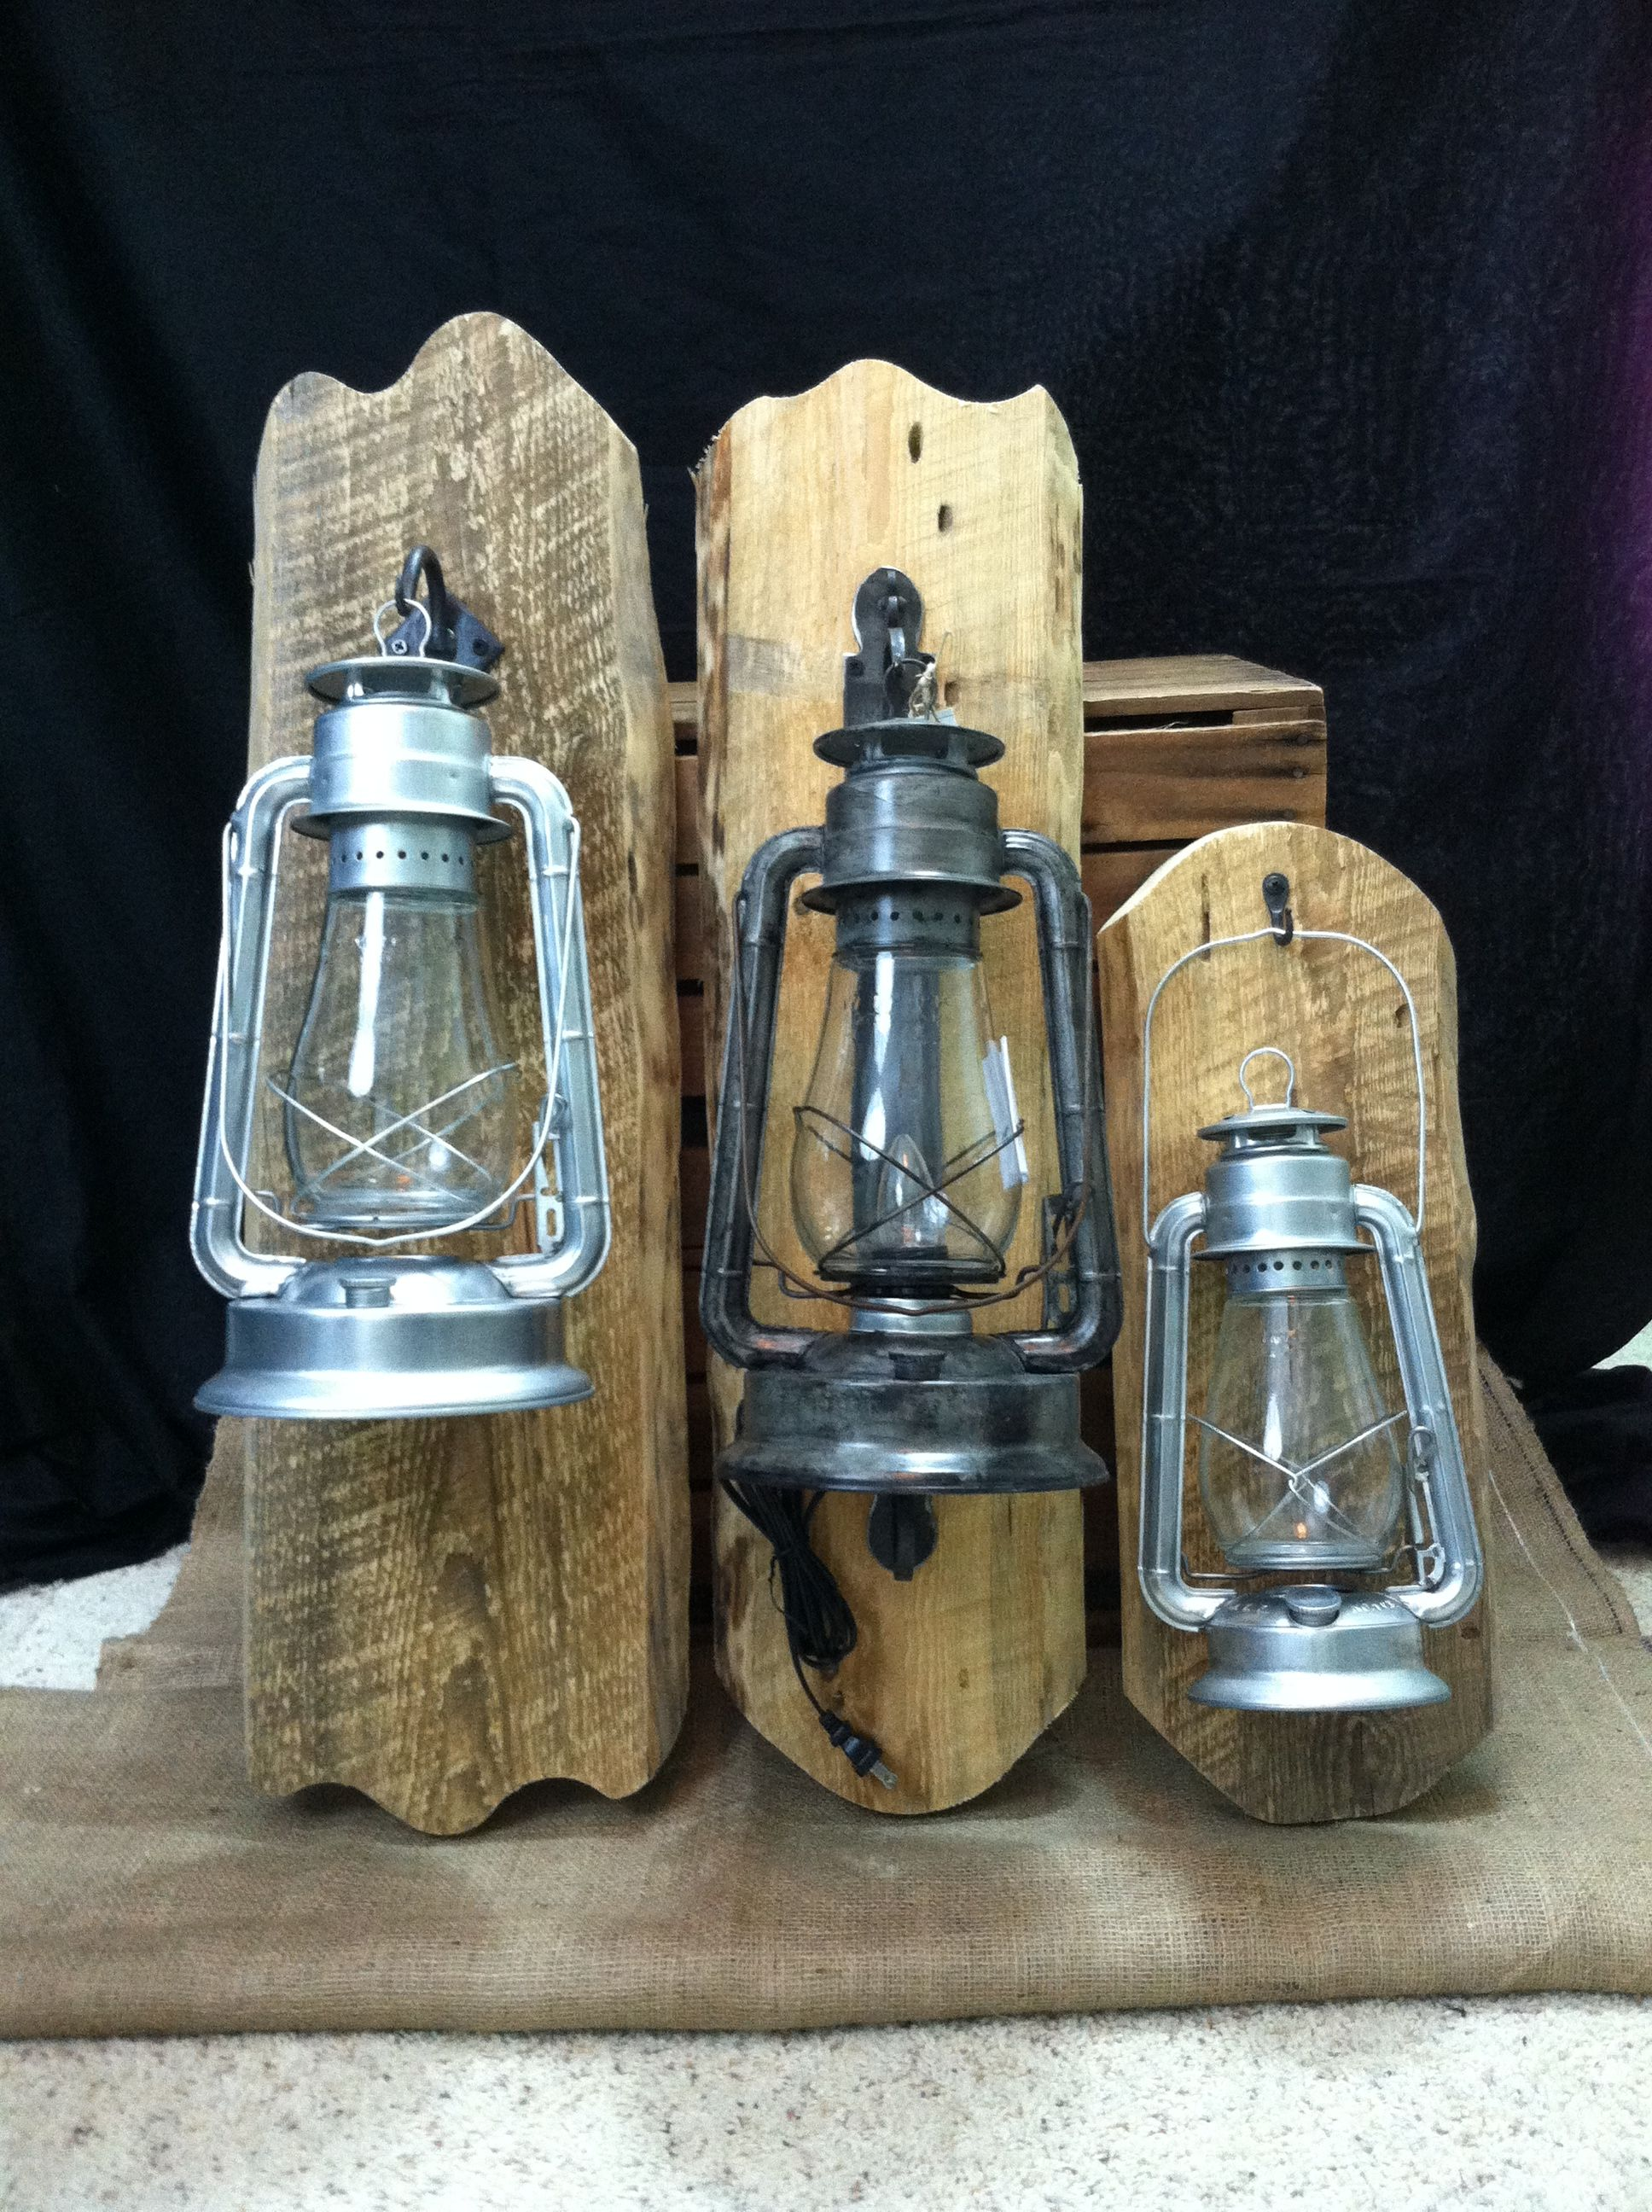 Rustic electric lantern wall fixtures purchase them on etsy http big rock lanterns ltd oil and electric lantern and lamp lighting lantern table lamps ceiling and wall fixtures wagon wheel and single tree arubaitofo Images